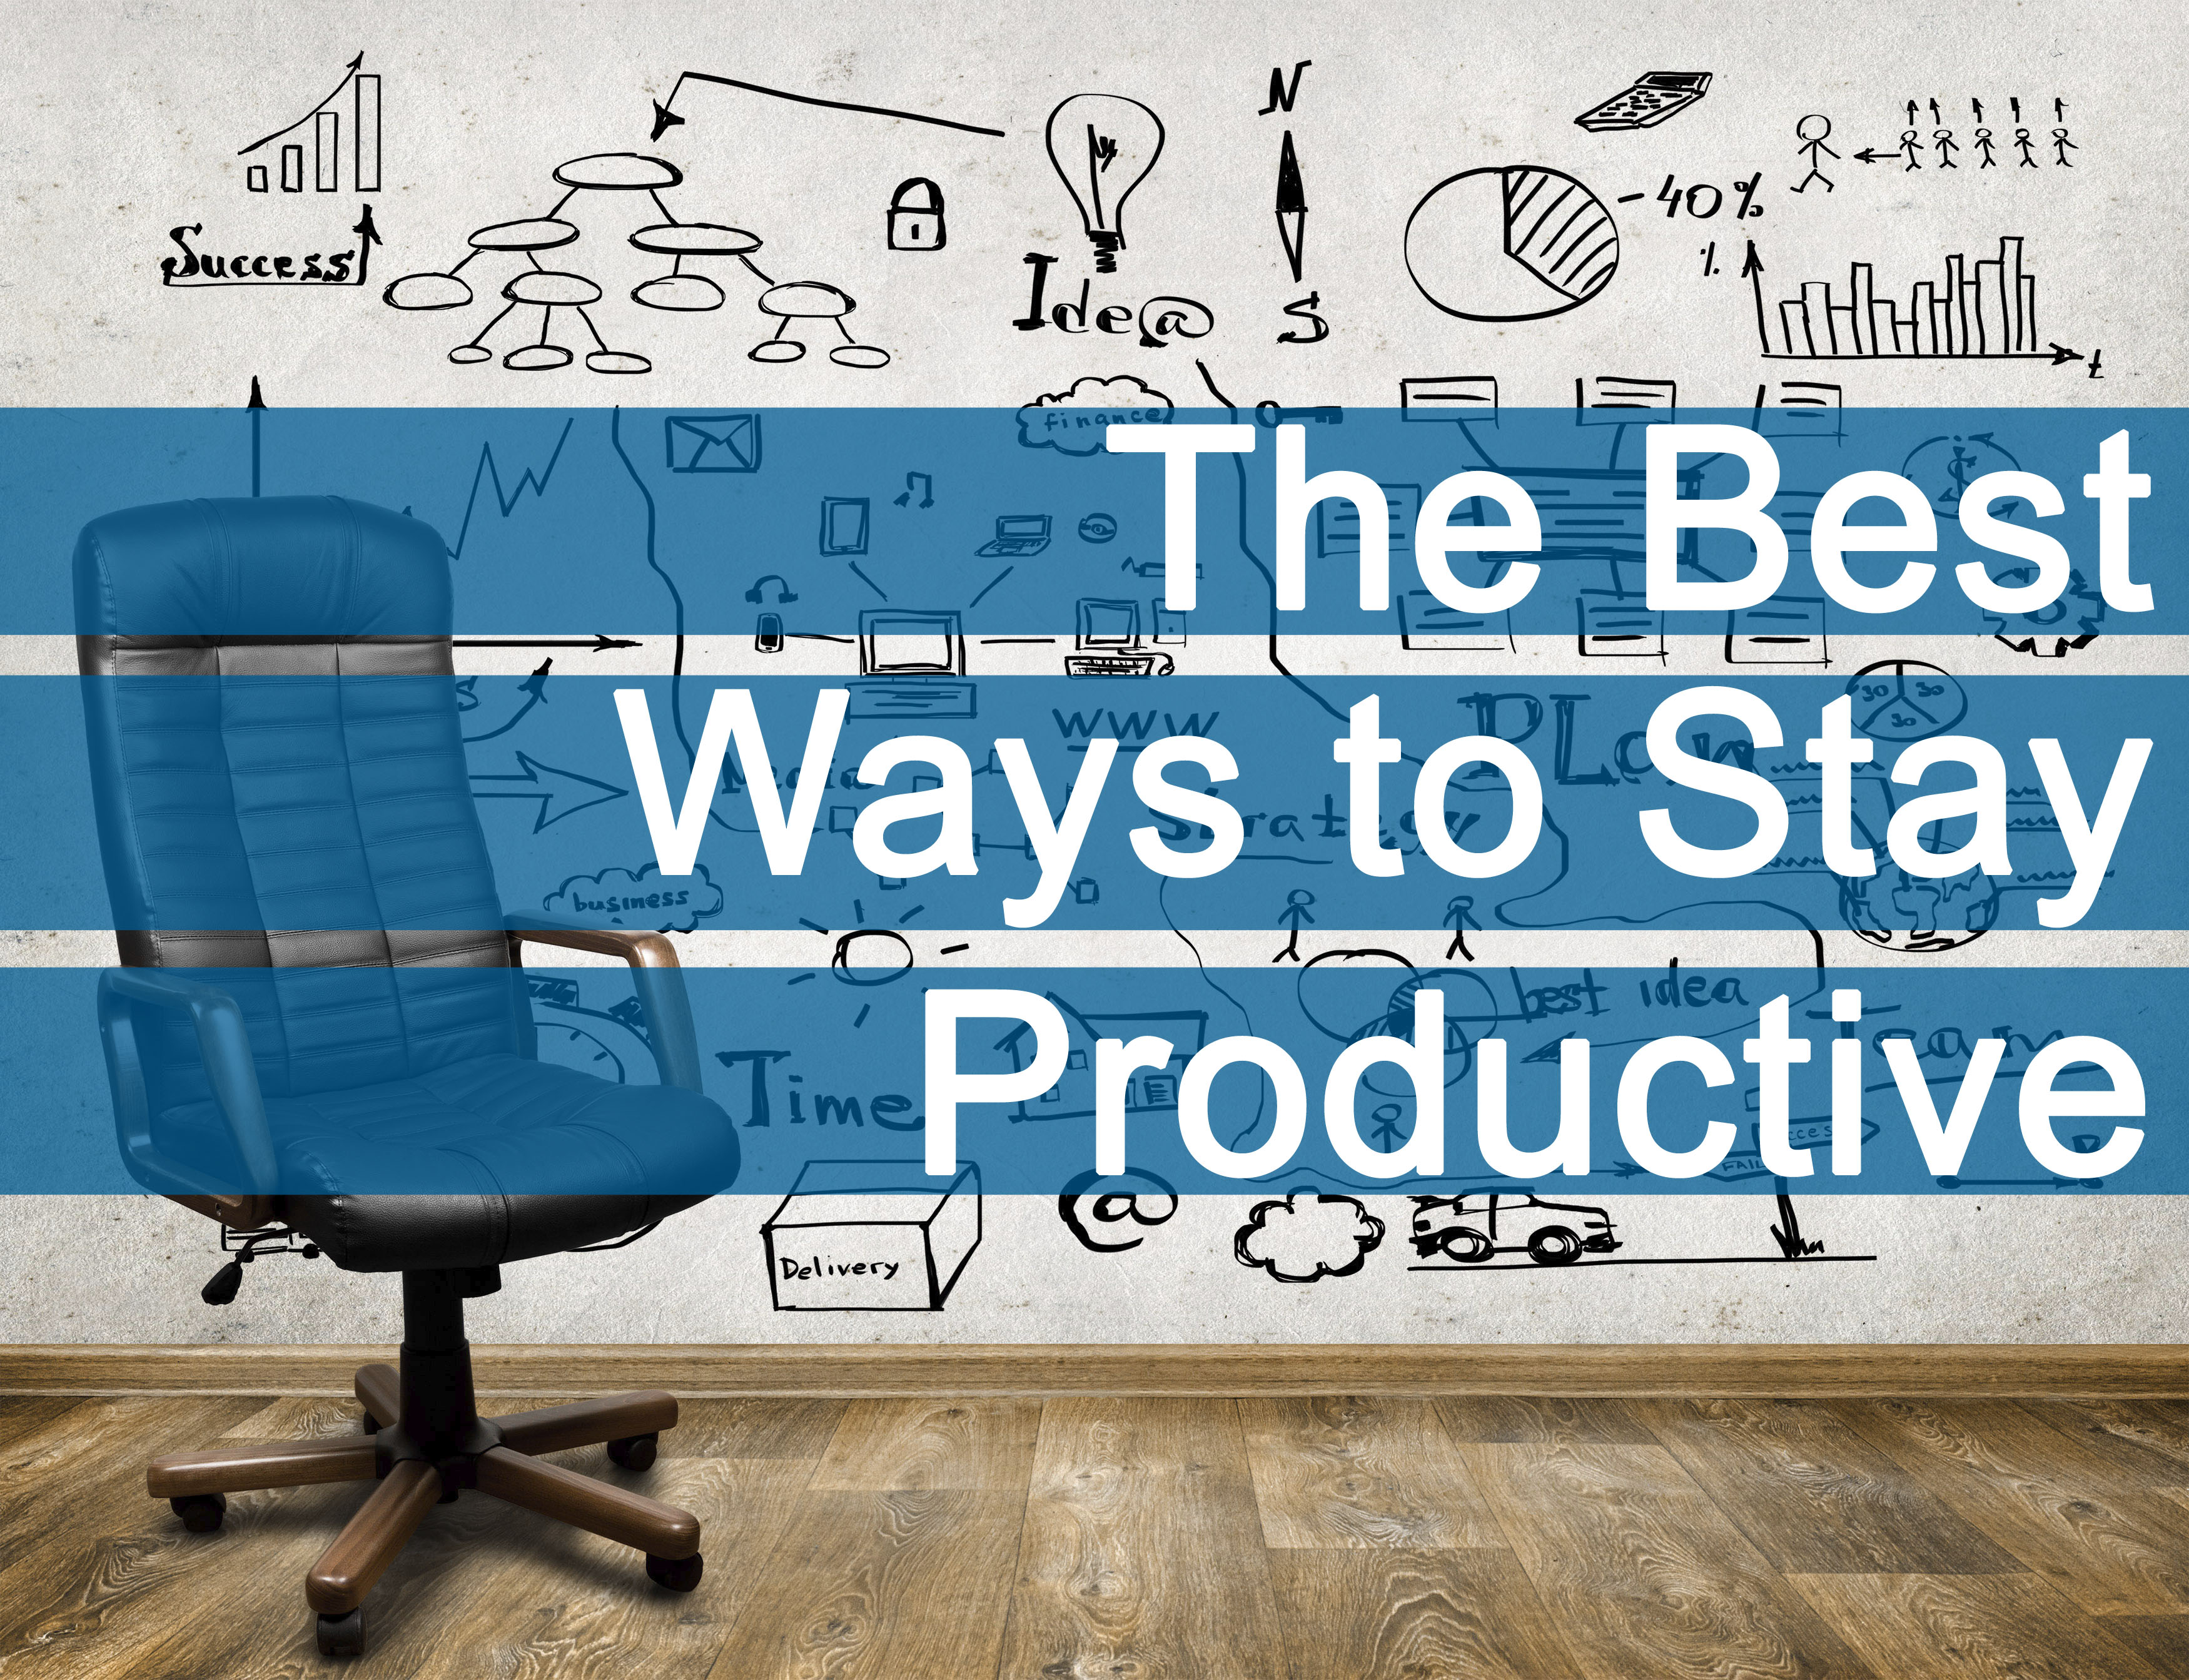 The Best Ways to Stay Productive